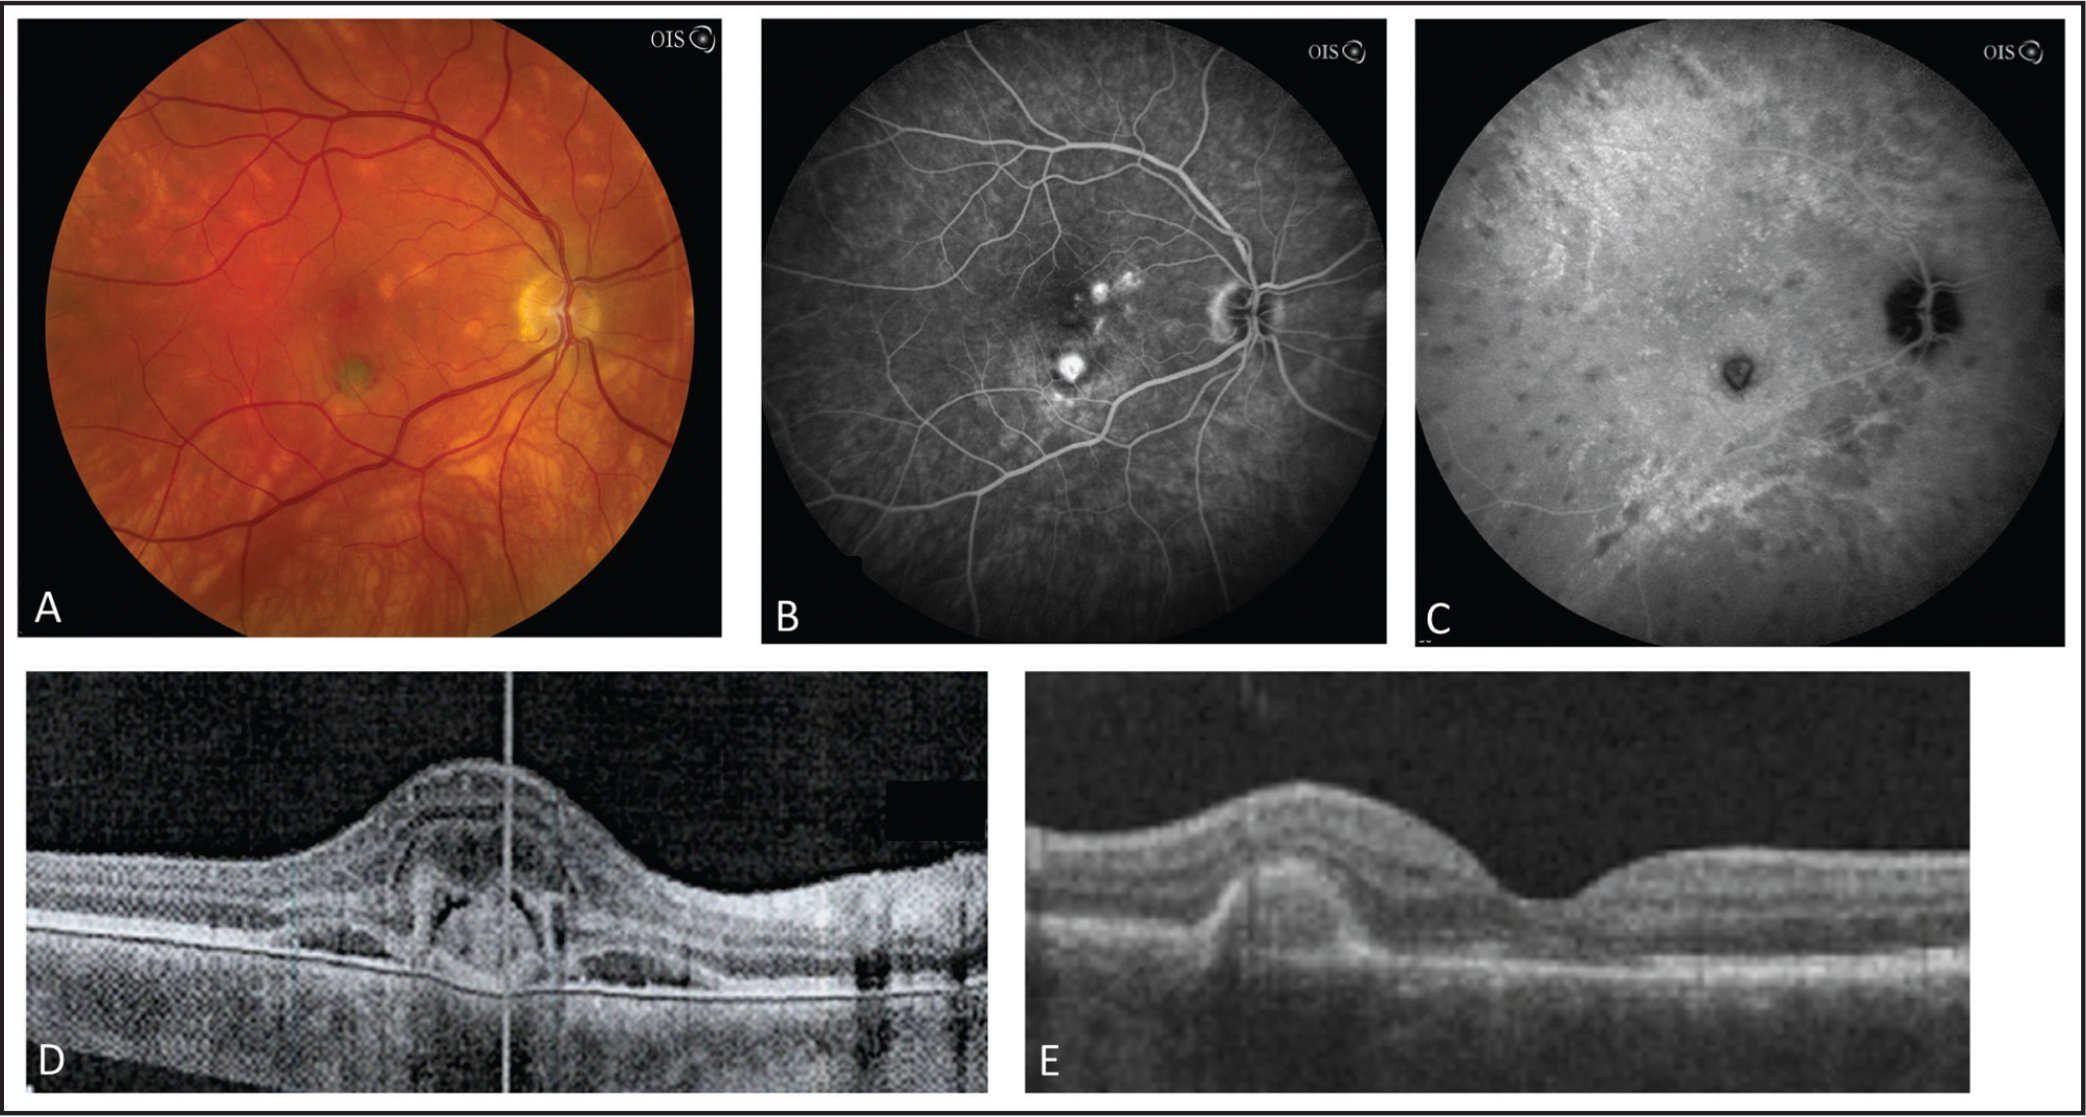 Fundus photography, fluorescein angiography (FA), indocyanine green (ICG) angiography, and spectral-domain optical coherence tomography (SD-OCT) imaging for Patient 3. Fundus photography (A) FA with late phase leakage consistent with choroidal neovascularization (B). ICG confirmed the presence of active choroidal lesions consistent with birdshot (C). SD-OCT showed subretinal fluid and ellipsoid layer disruption (D). Following five injections of bevacizumab and initiation of methotrexate with an oral prednisone taper, complete resolution of the subretinal fluid and only a residual pigment epithelial detachment is seen by SD-OCT (E).